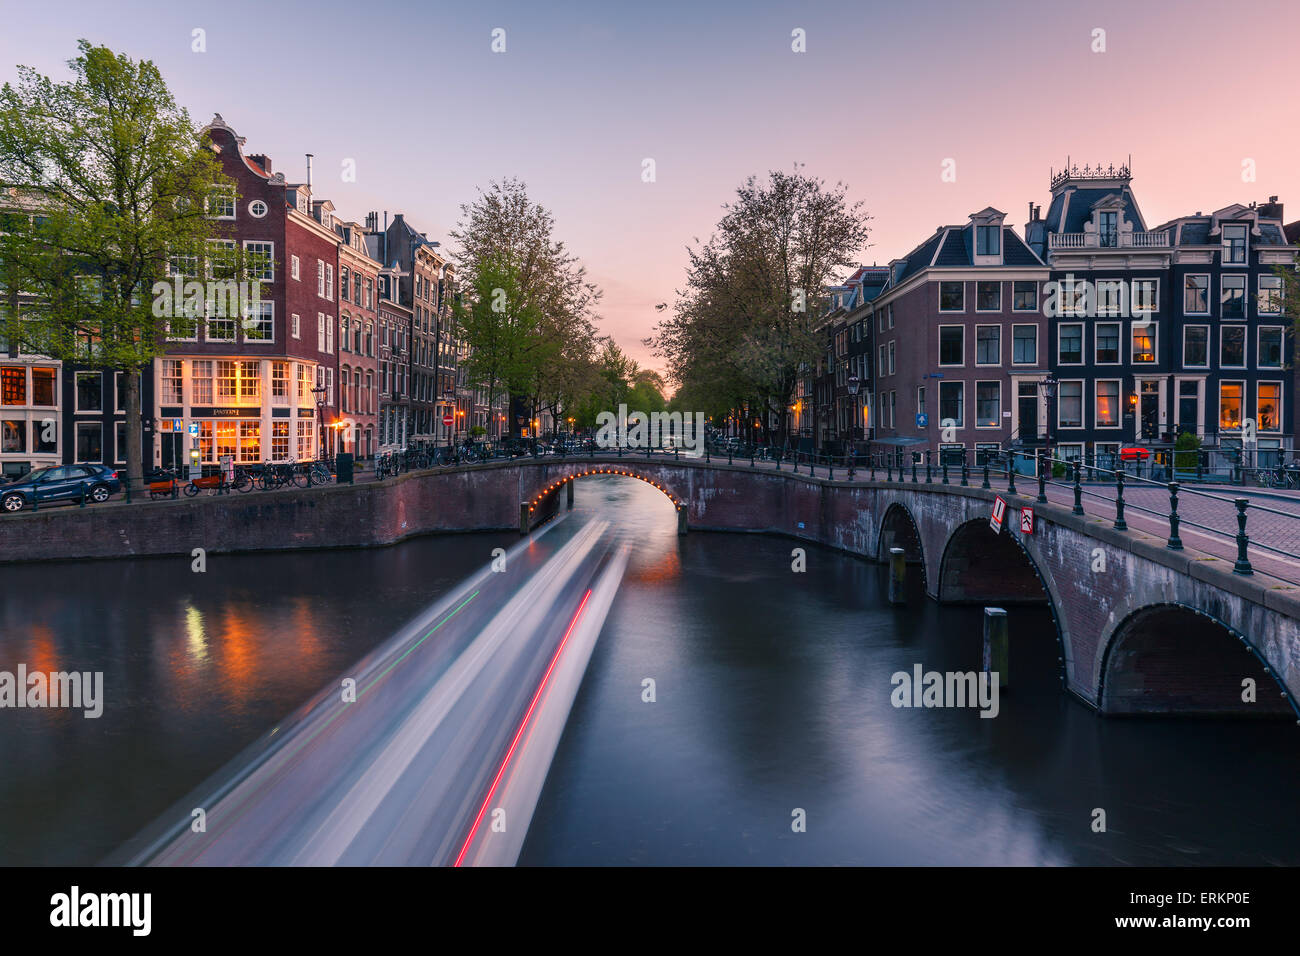 An evening at the canals near the Keizersgracht at Amsterdam, the Netherlands. Stock Photo